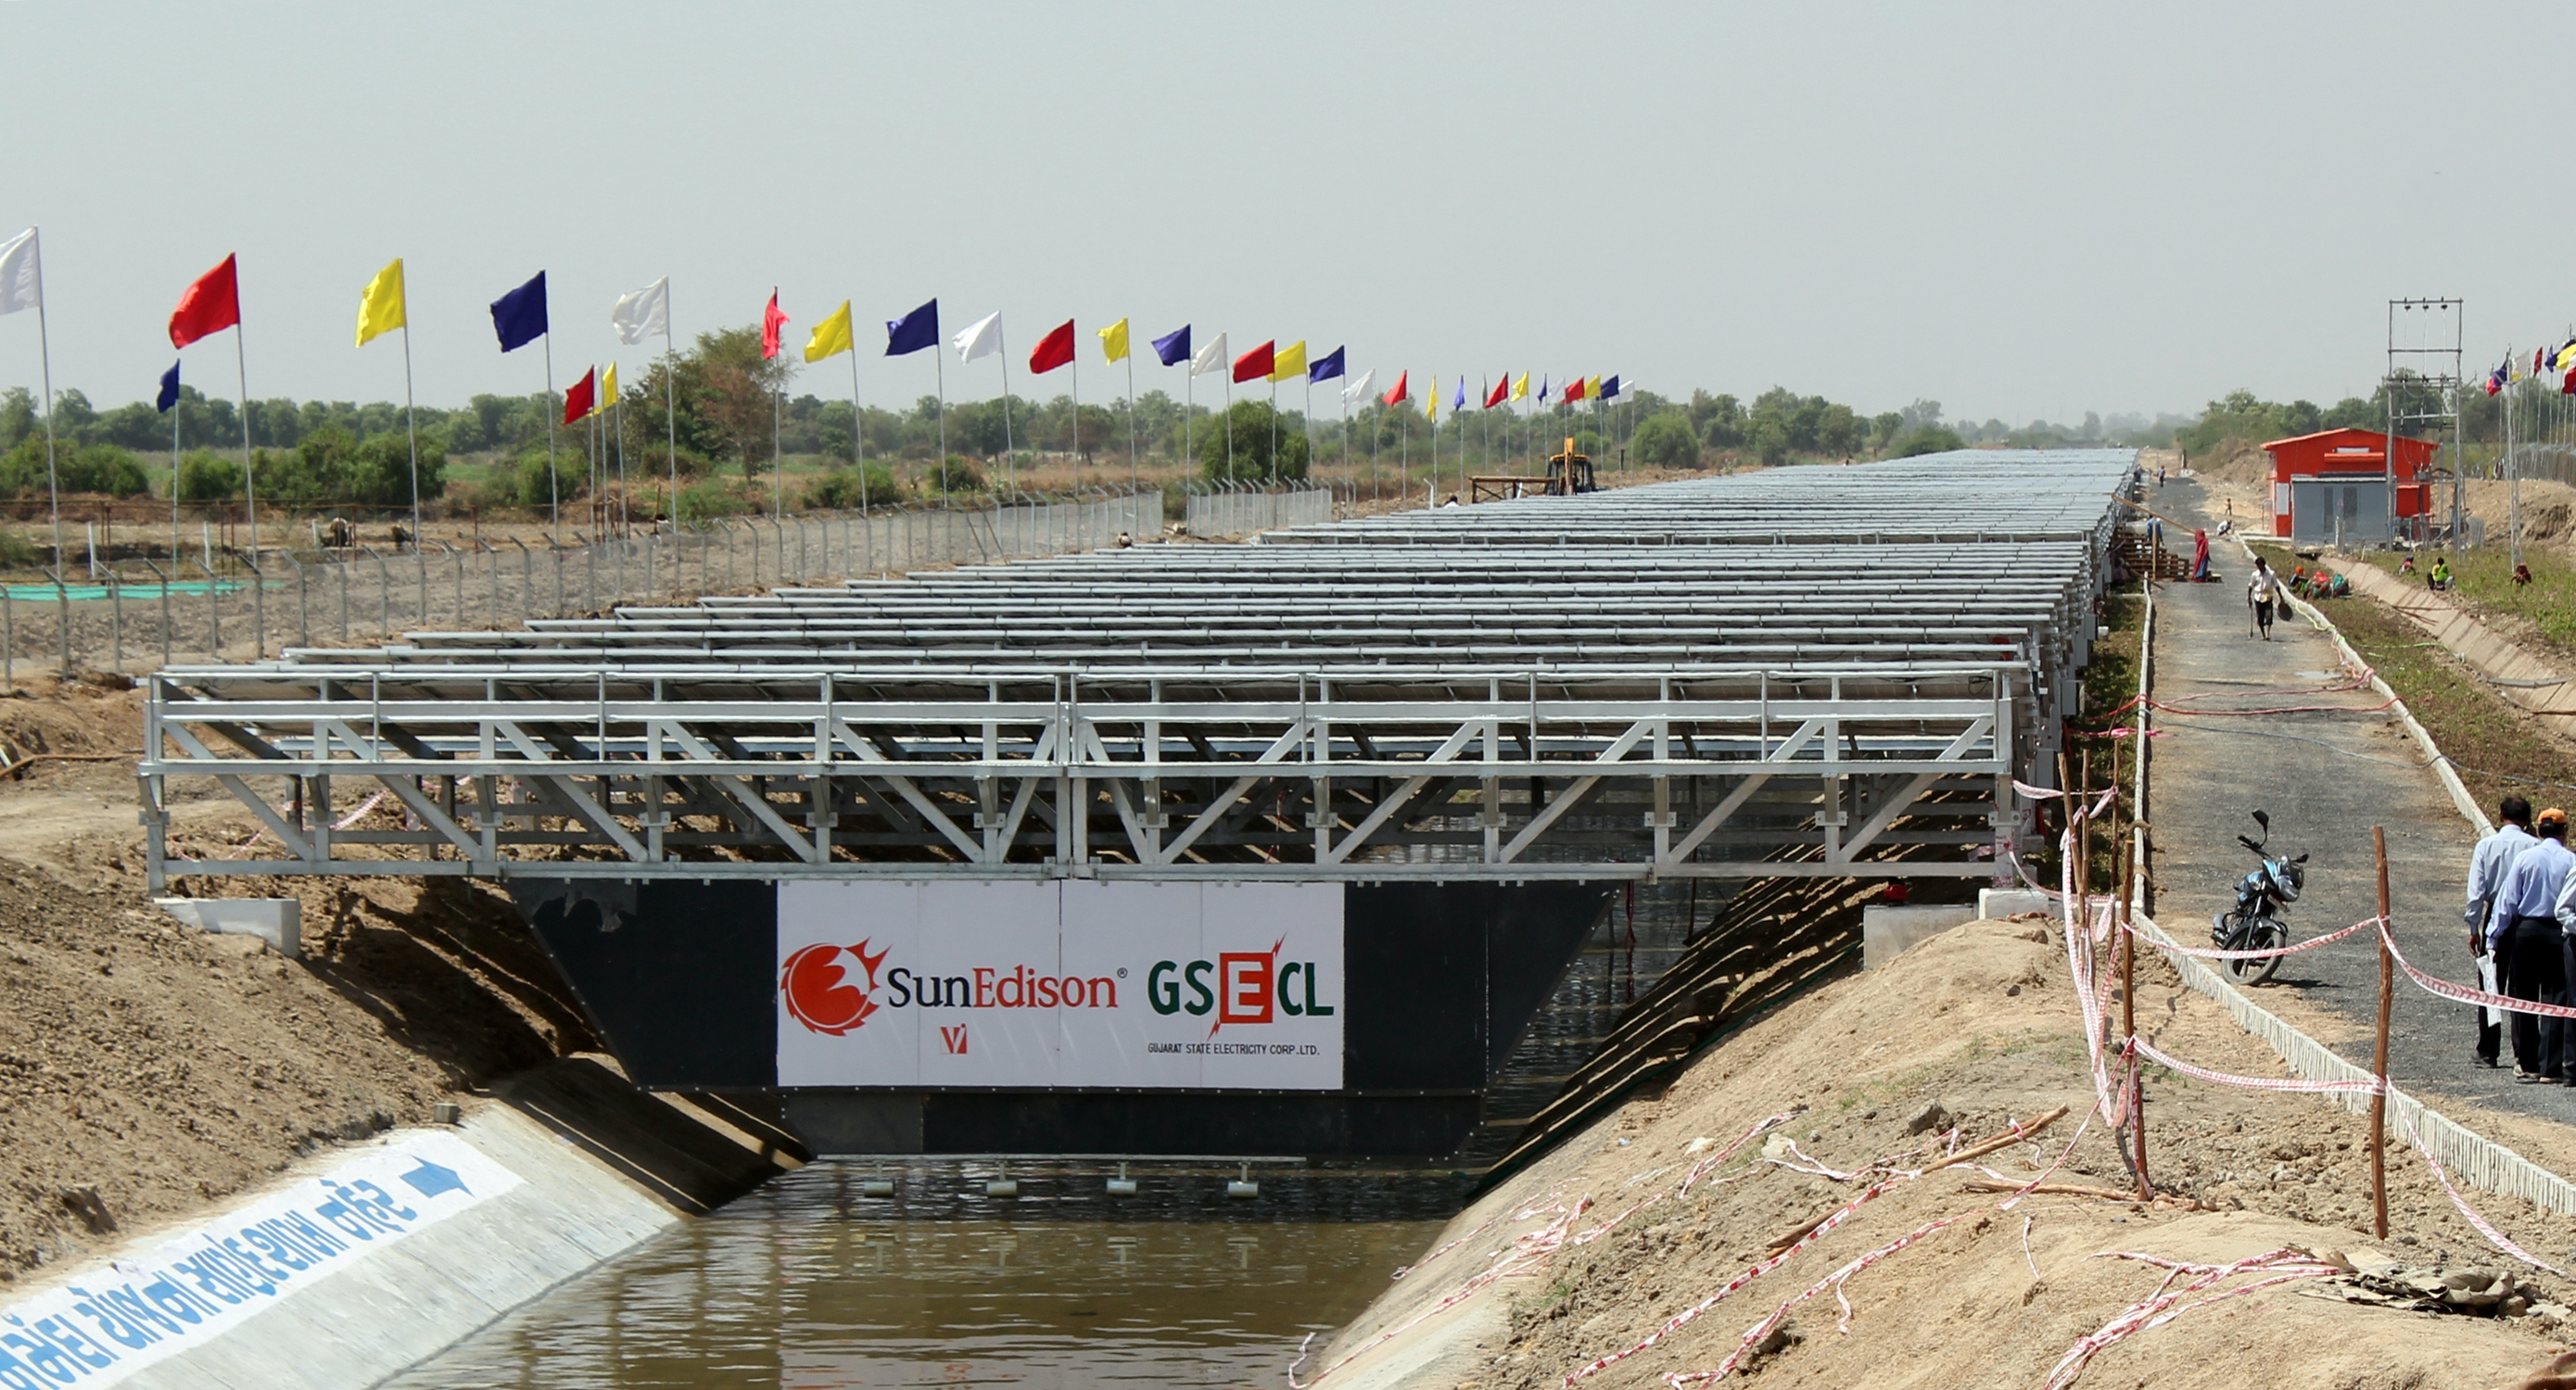 SunEdison's solar canal project  in India